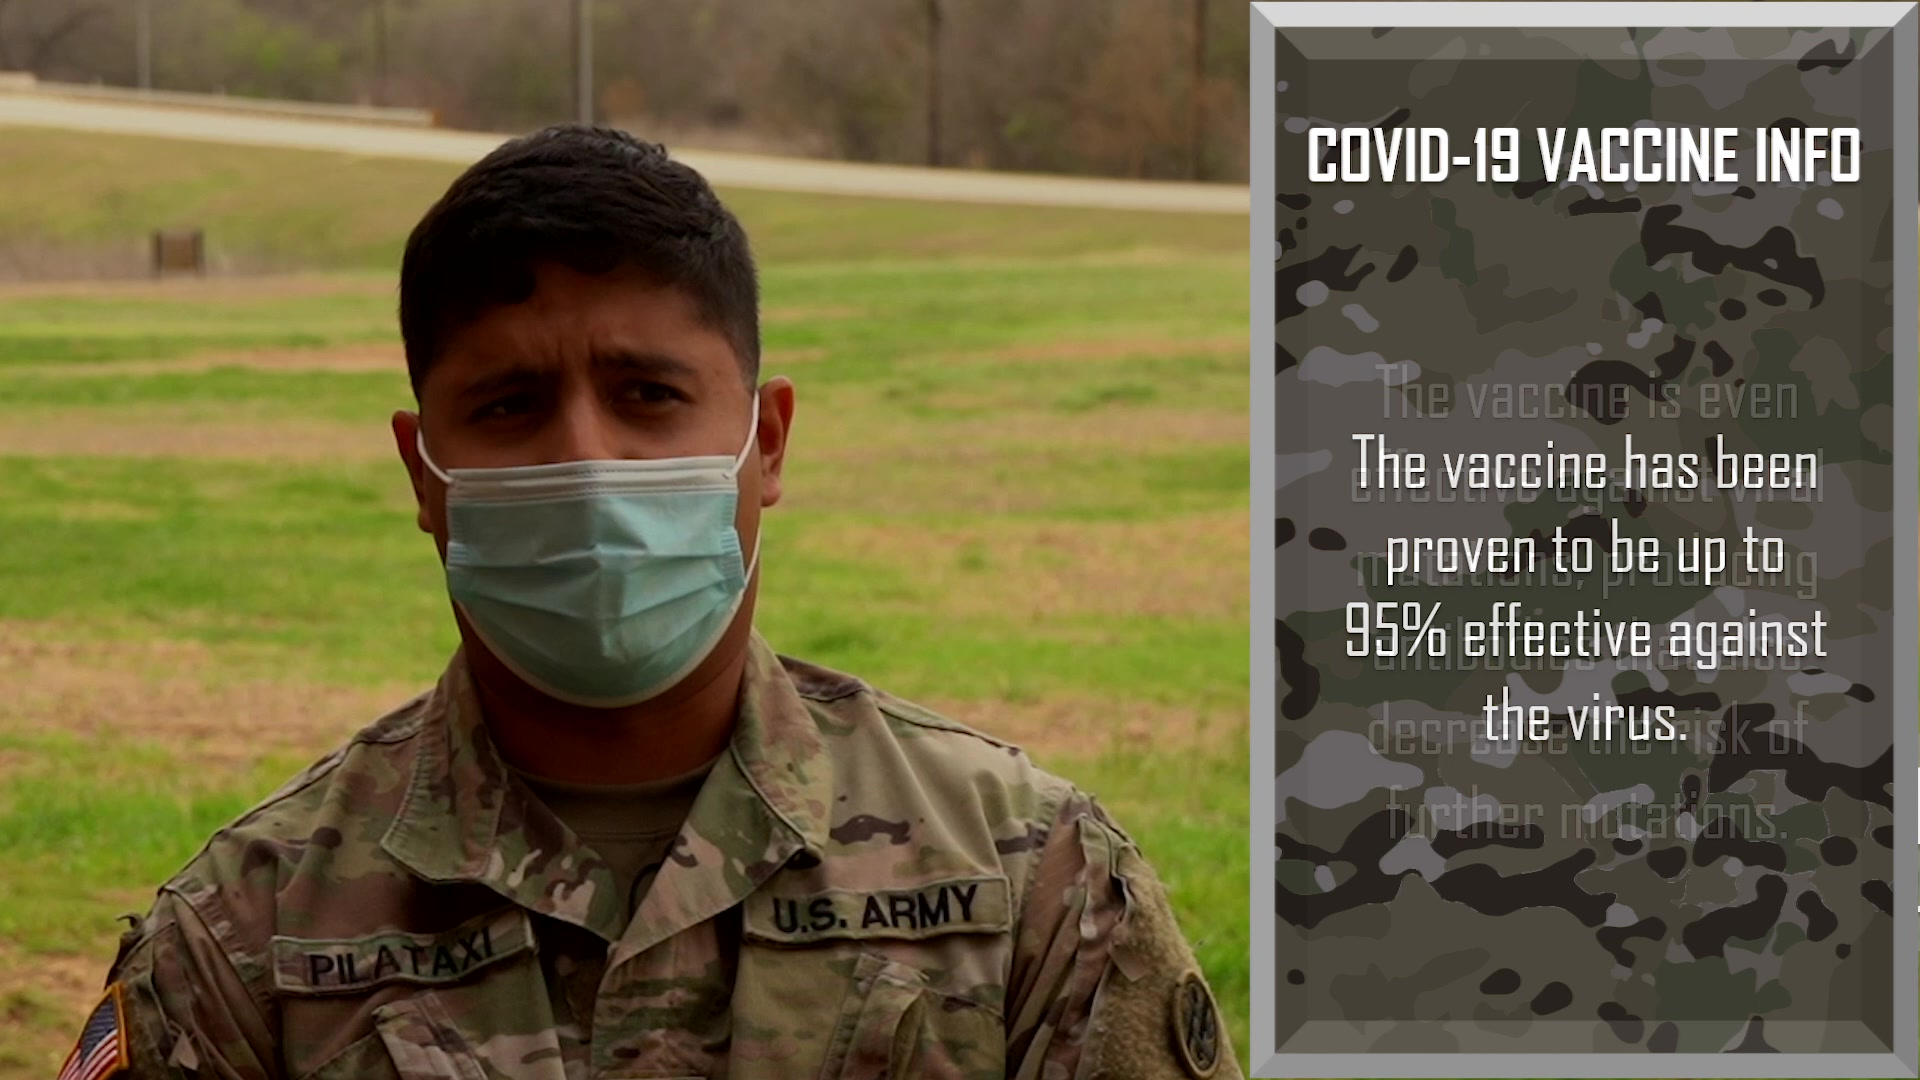 Soldiers of the 4th Sustainment Command (Expeditionary) discuss their reasons for receiving the COVID-19 vaccination during their ongoing COVID-19 response mission in support of the 377th Theater Sustainment Command and U.S. Army North.